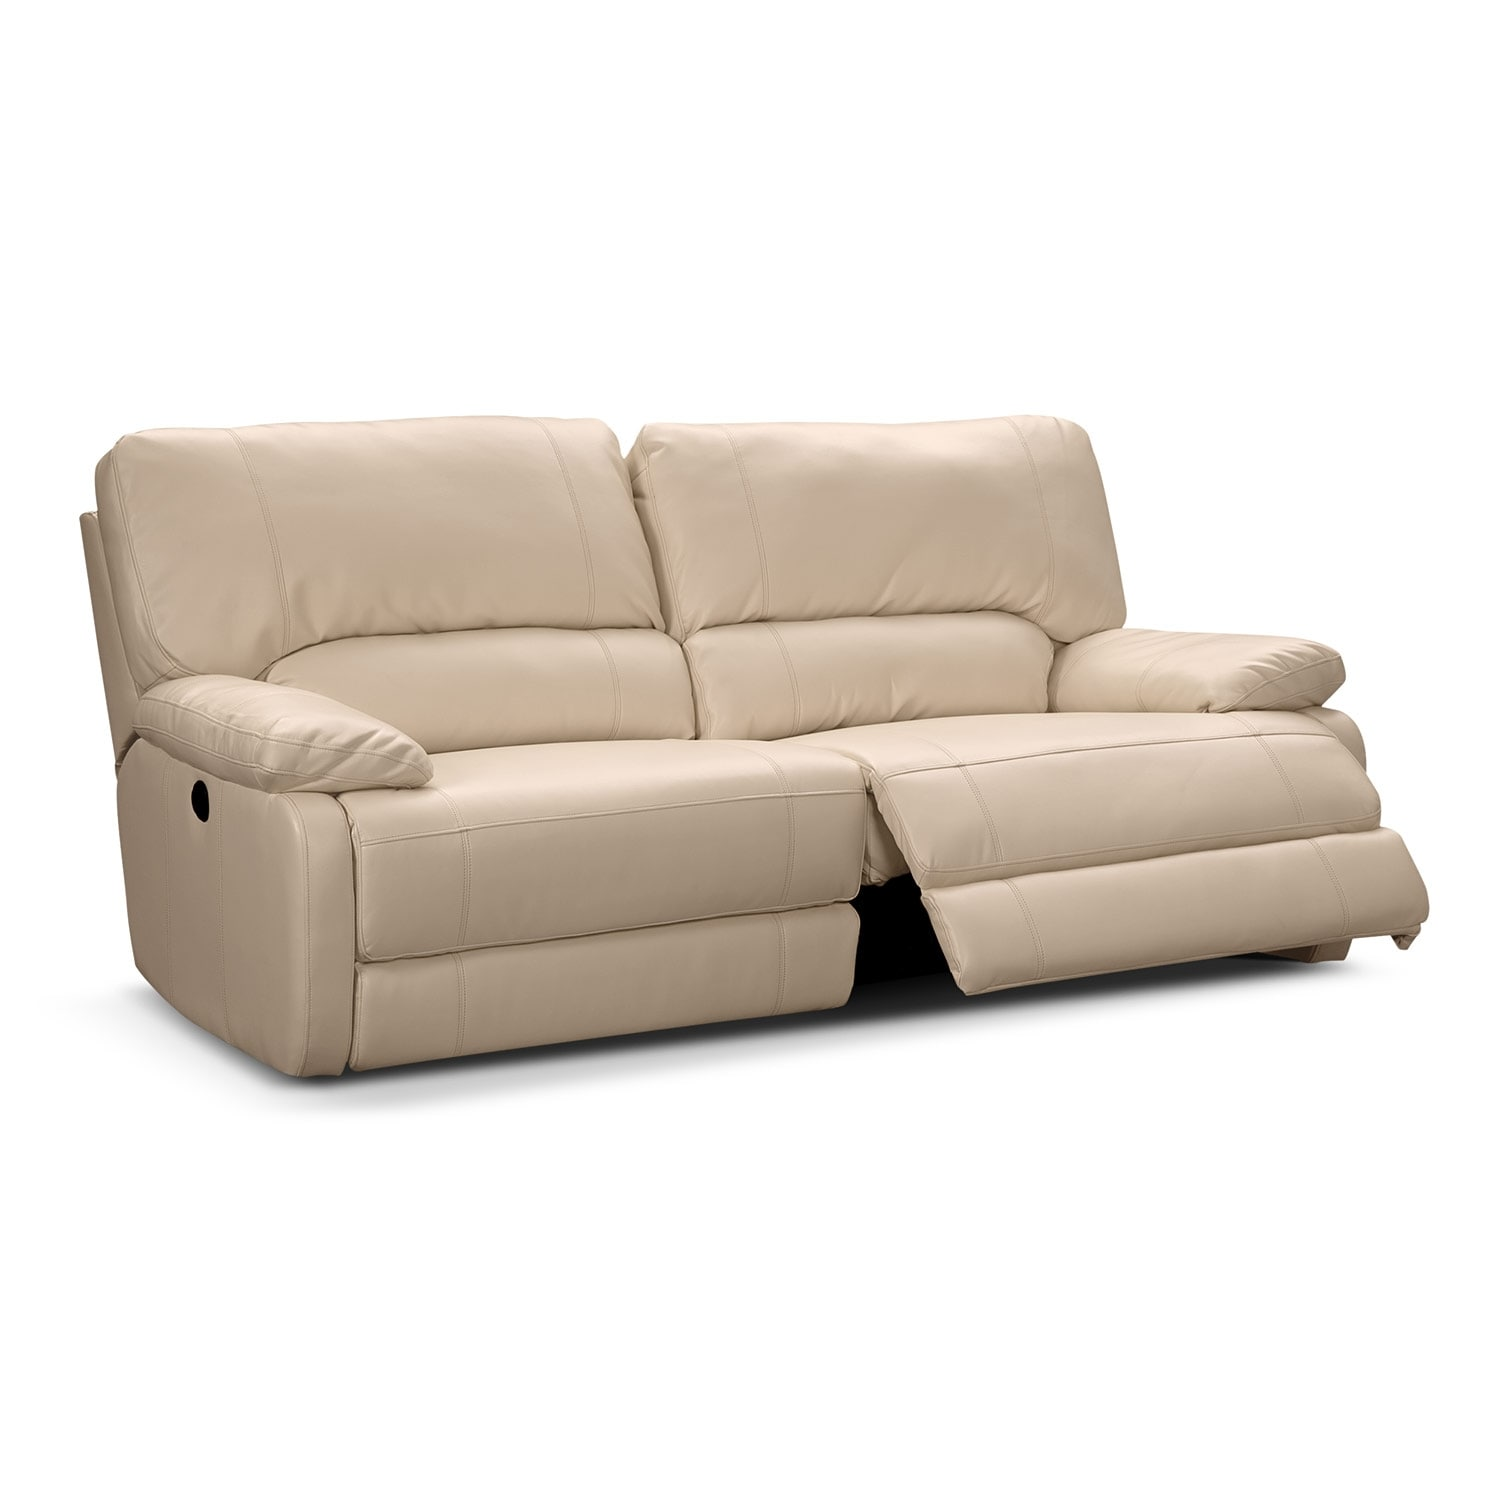 Coronado leather power reclining sofa value city furniture Loveseats that recline